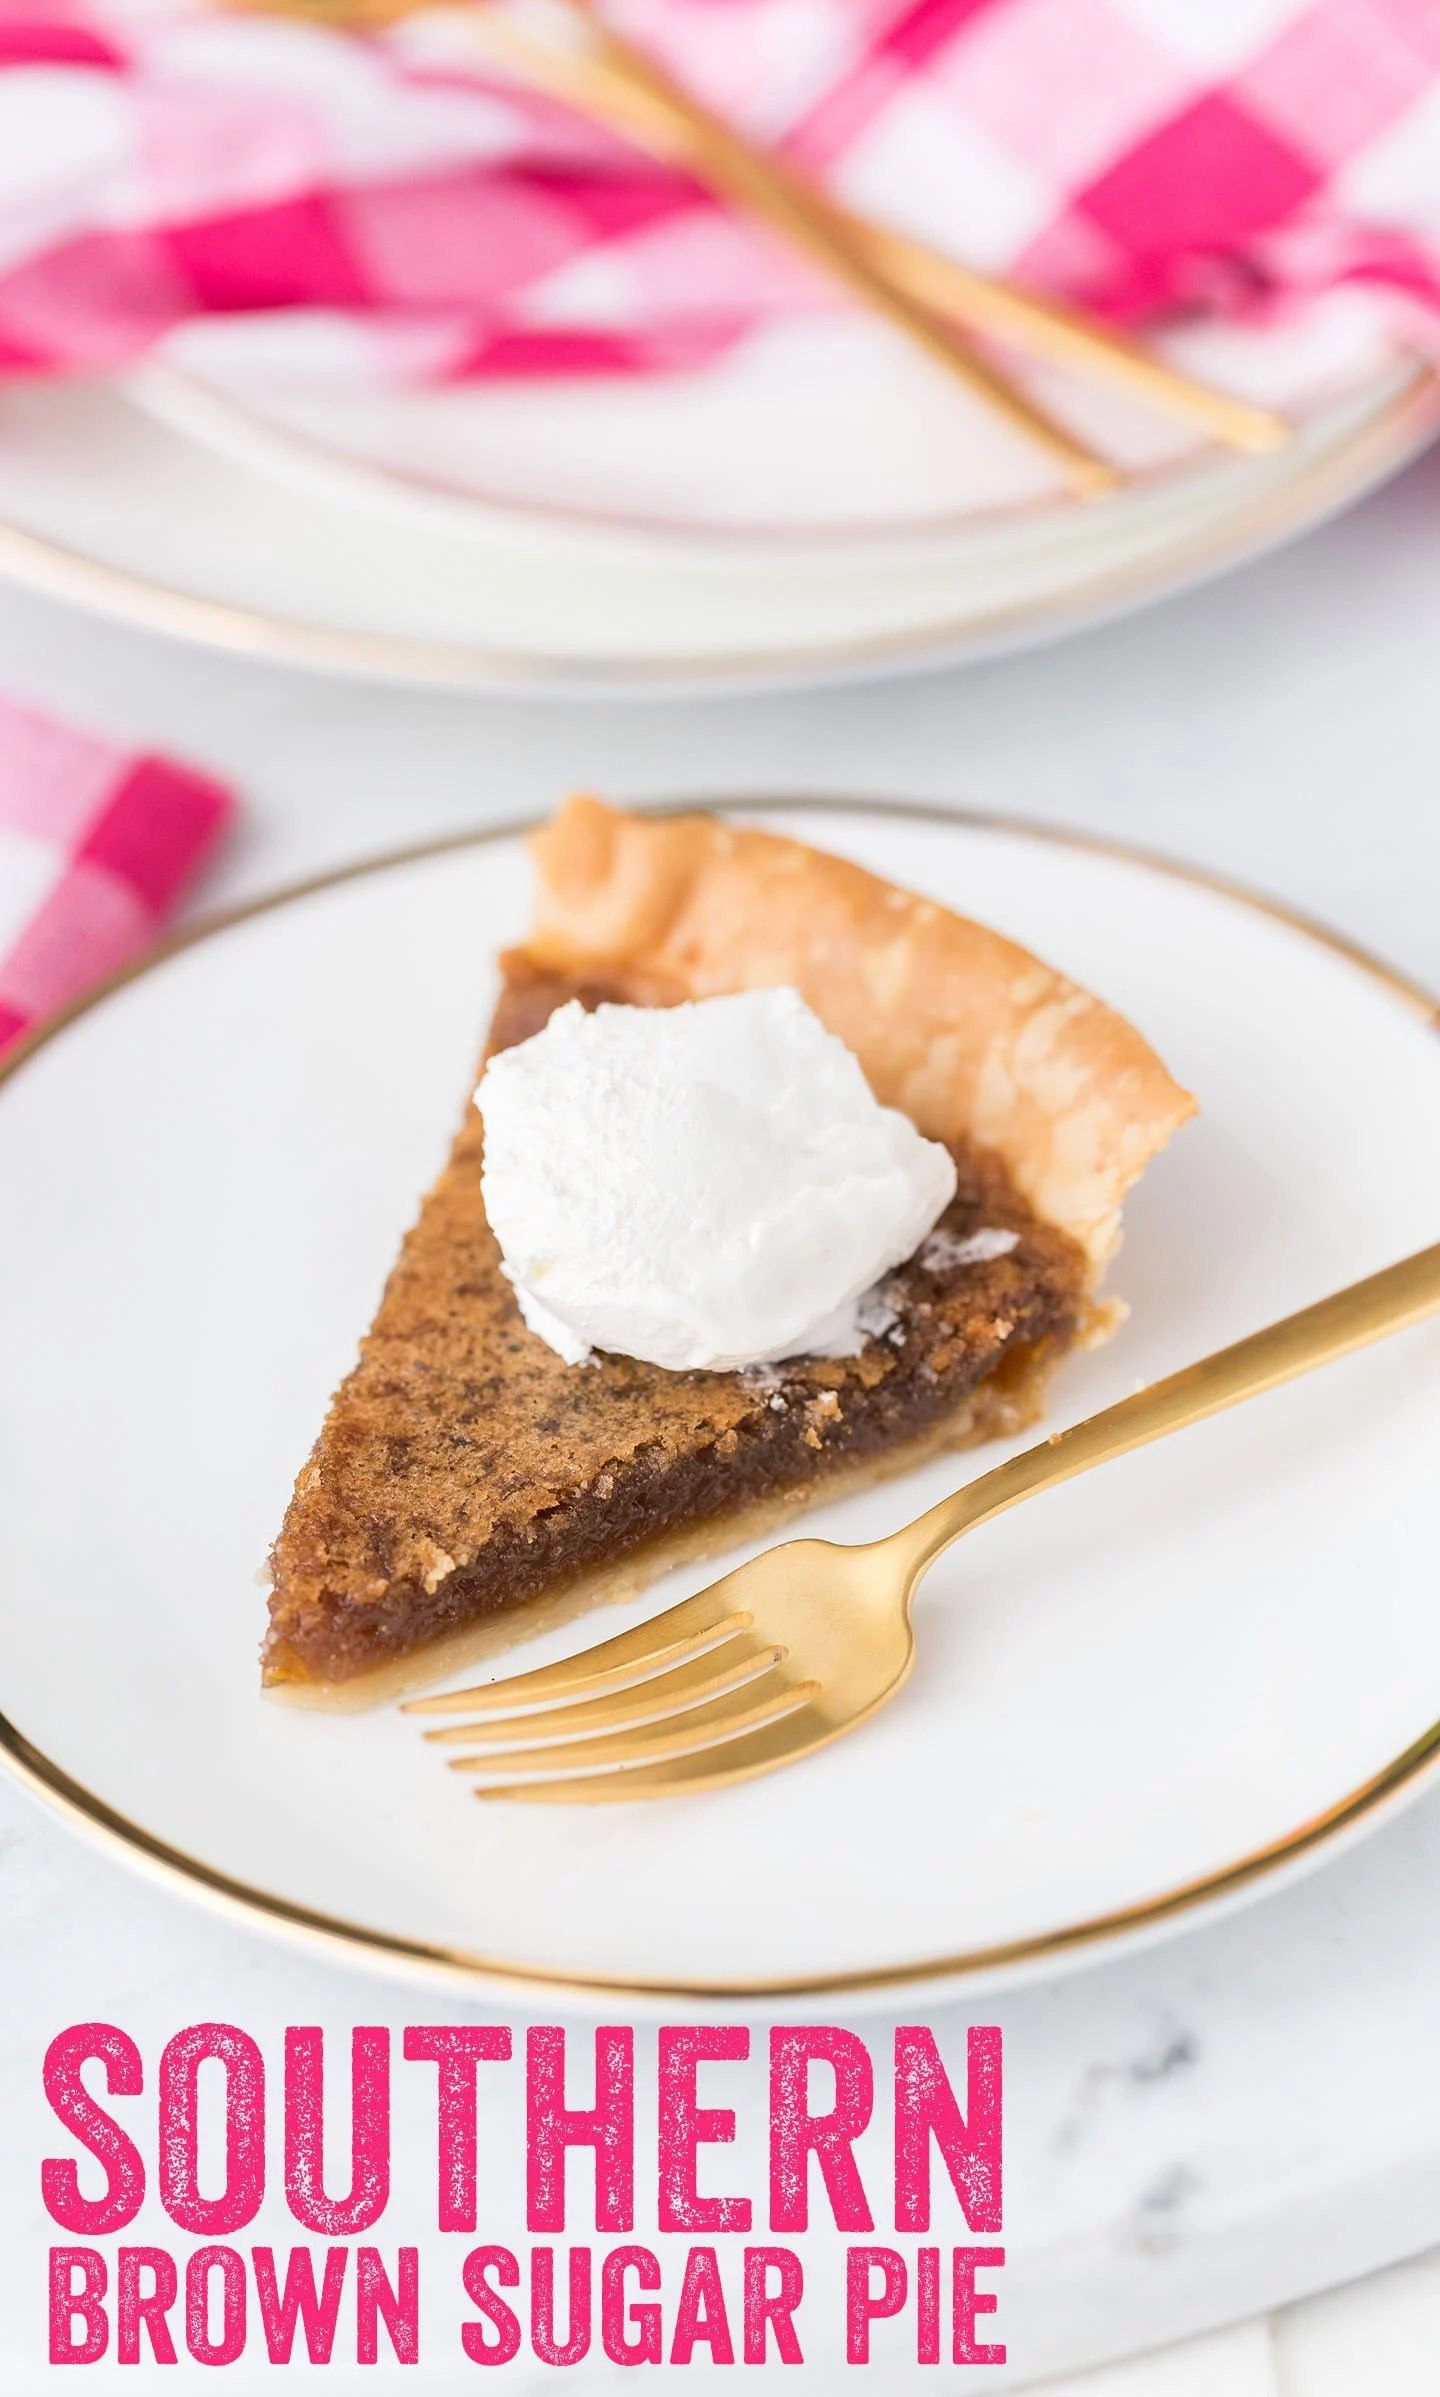 Famous Southern Brown Sugar Pie